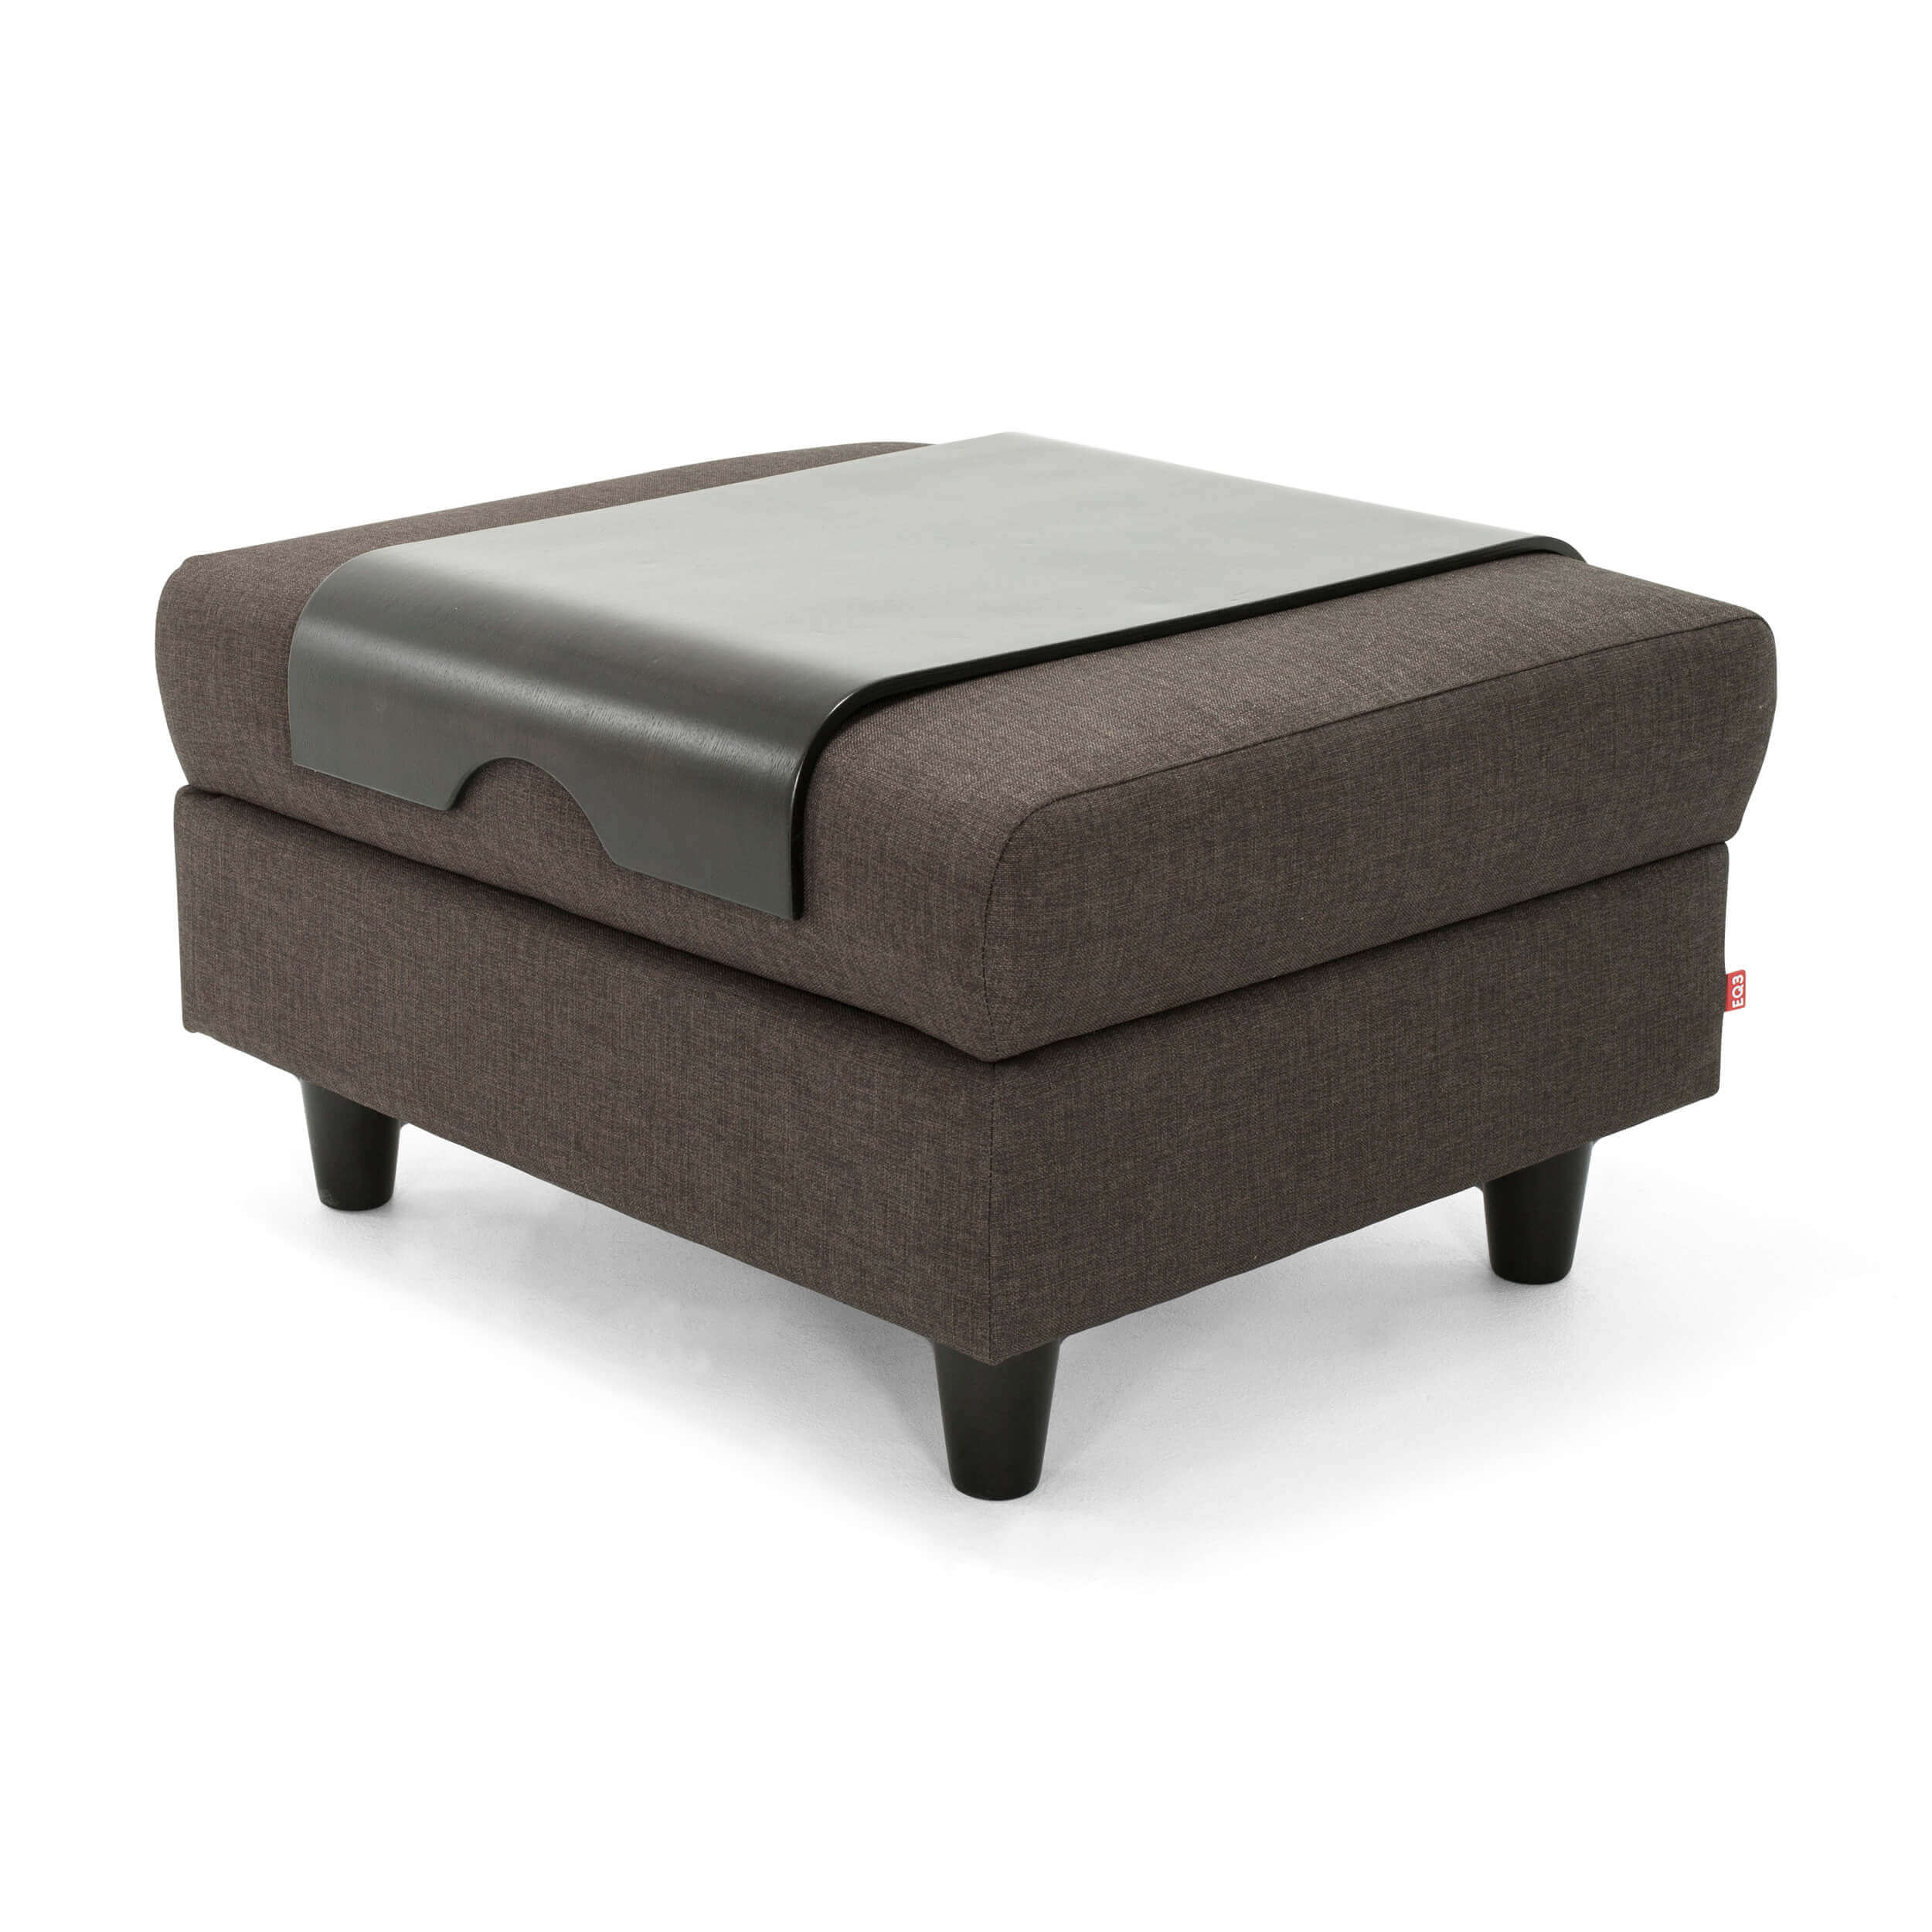 Remarkable Ottoman Tray Gamerscity Chair Design For Home Gamerscityorg